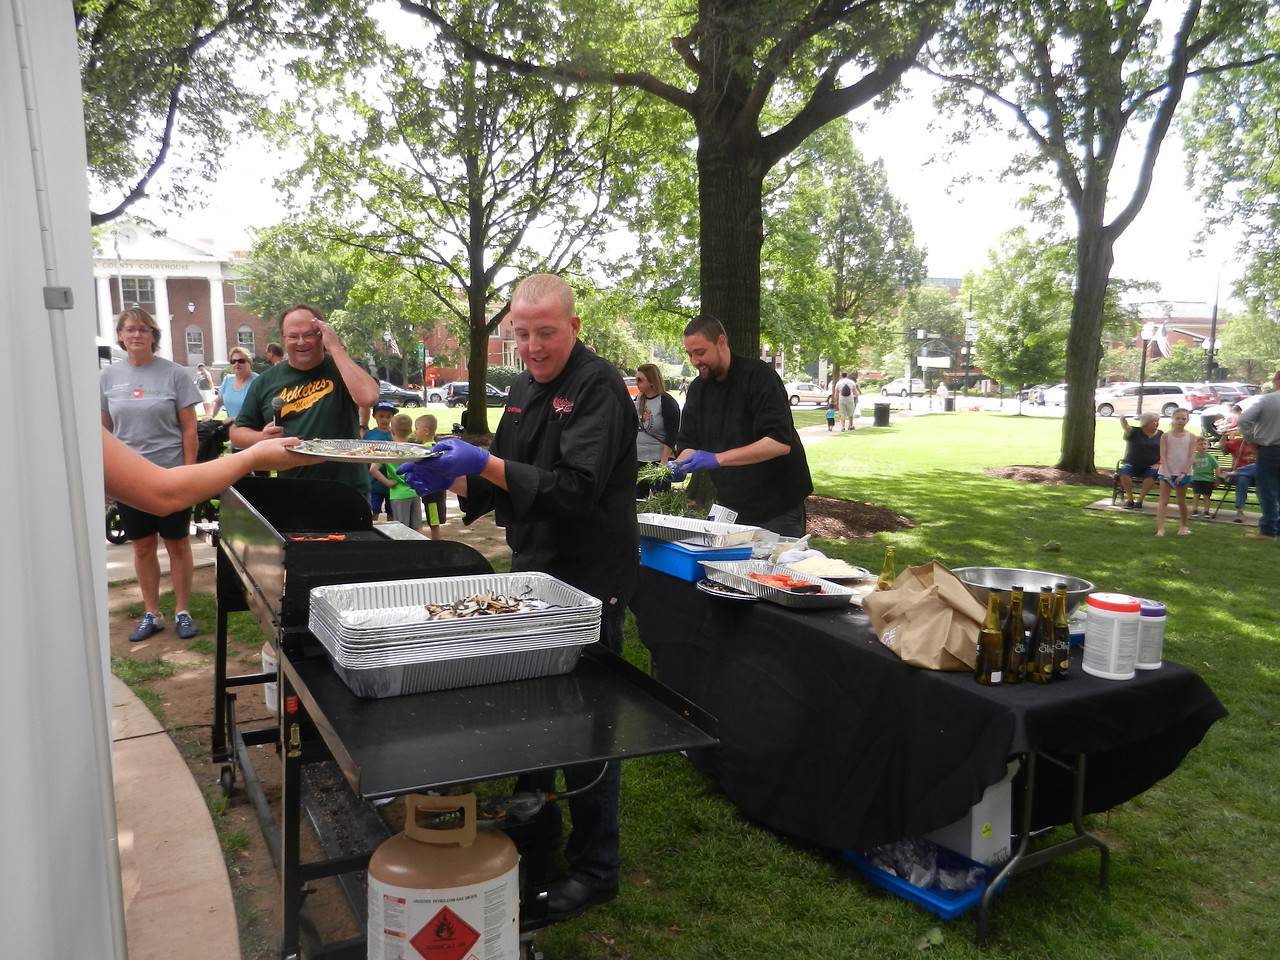 ANNIE RYAN HYRA / SPECIAL TO THE GAZETTE Chef Ryan Marino, owner of The Corkscrew Saloon in Medina, makes flatbread pizzas with all locally sourced ingredients Saturday during the Farmers Market event on Public Square. Chef de cuisine Alan Carroll, who works with Marino, is at right.